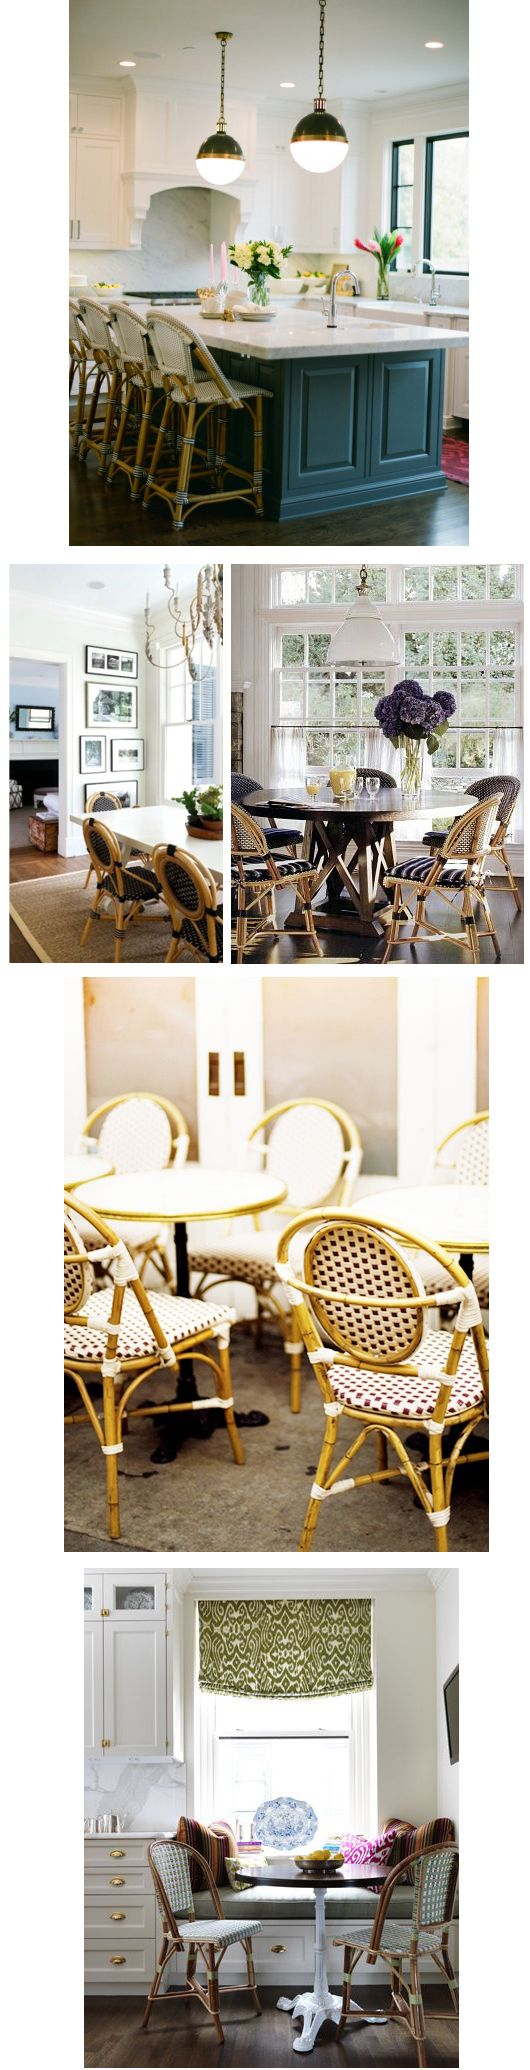 Arianna Belle The Blog: Budget Friendly Source For French Bistro Chairs (Arianna